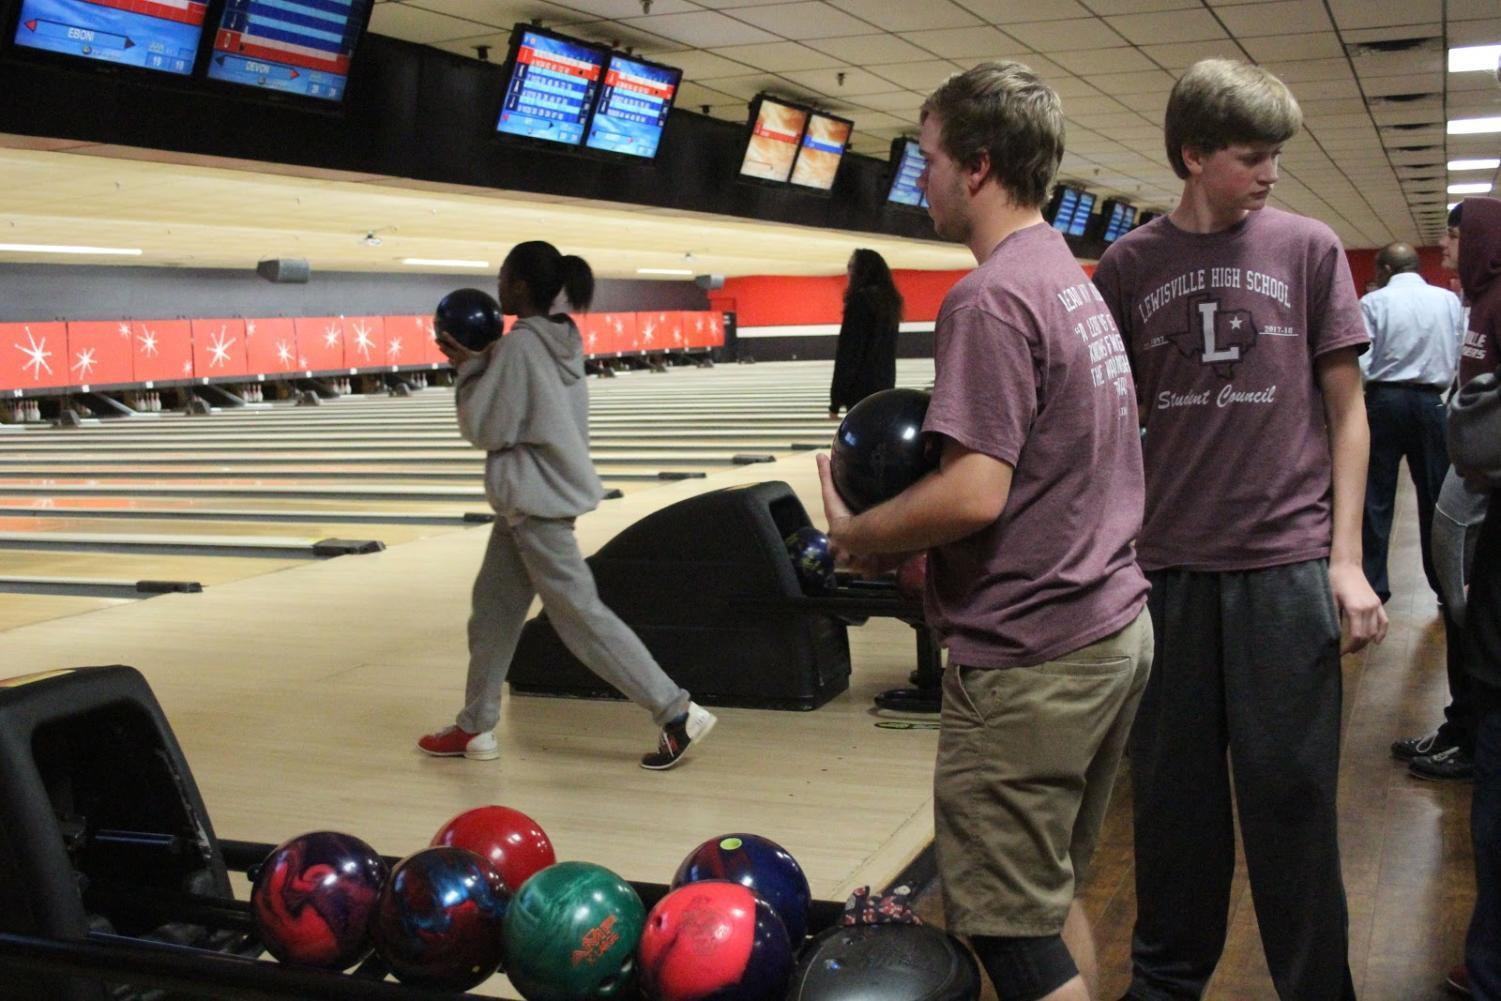 Senior Connor Mixson and junior Ben Olinger wait their turns to bowl as sophomore Eboni Boston bowls in the next lane.